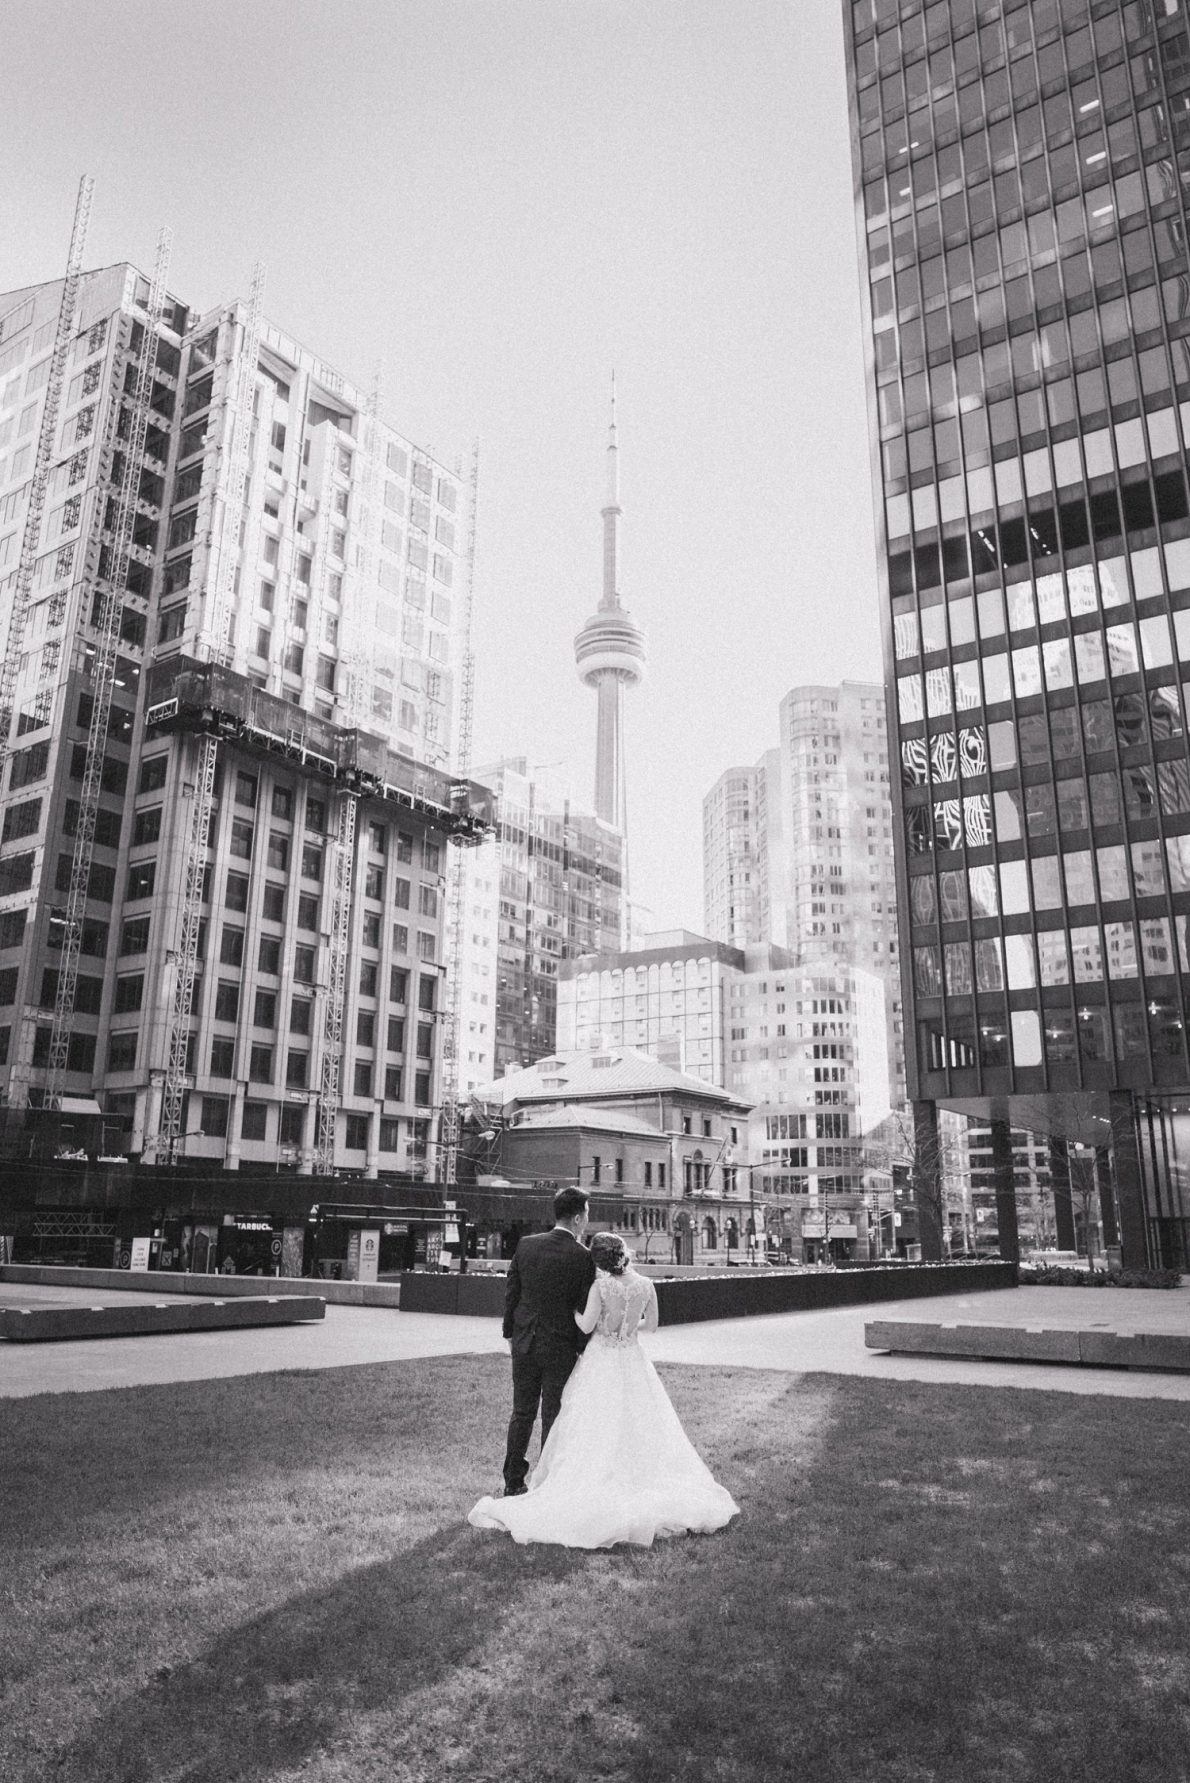 CN Tower Sunset Bride and groom outdoor portraits in Downtown Toronto Financial District Toronto Wedding Photos